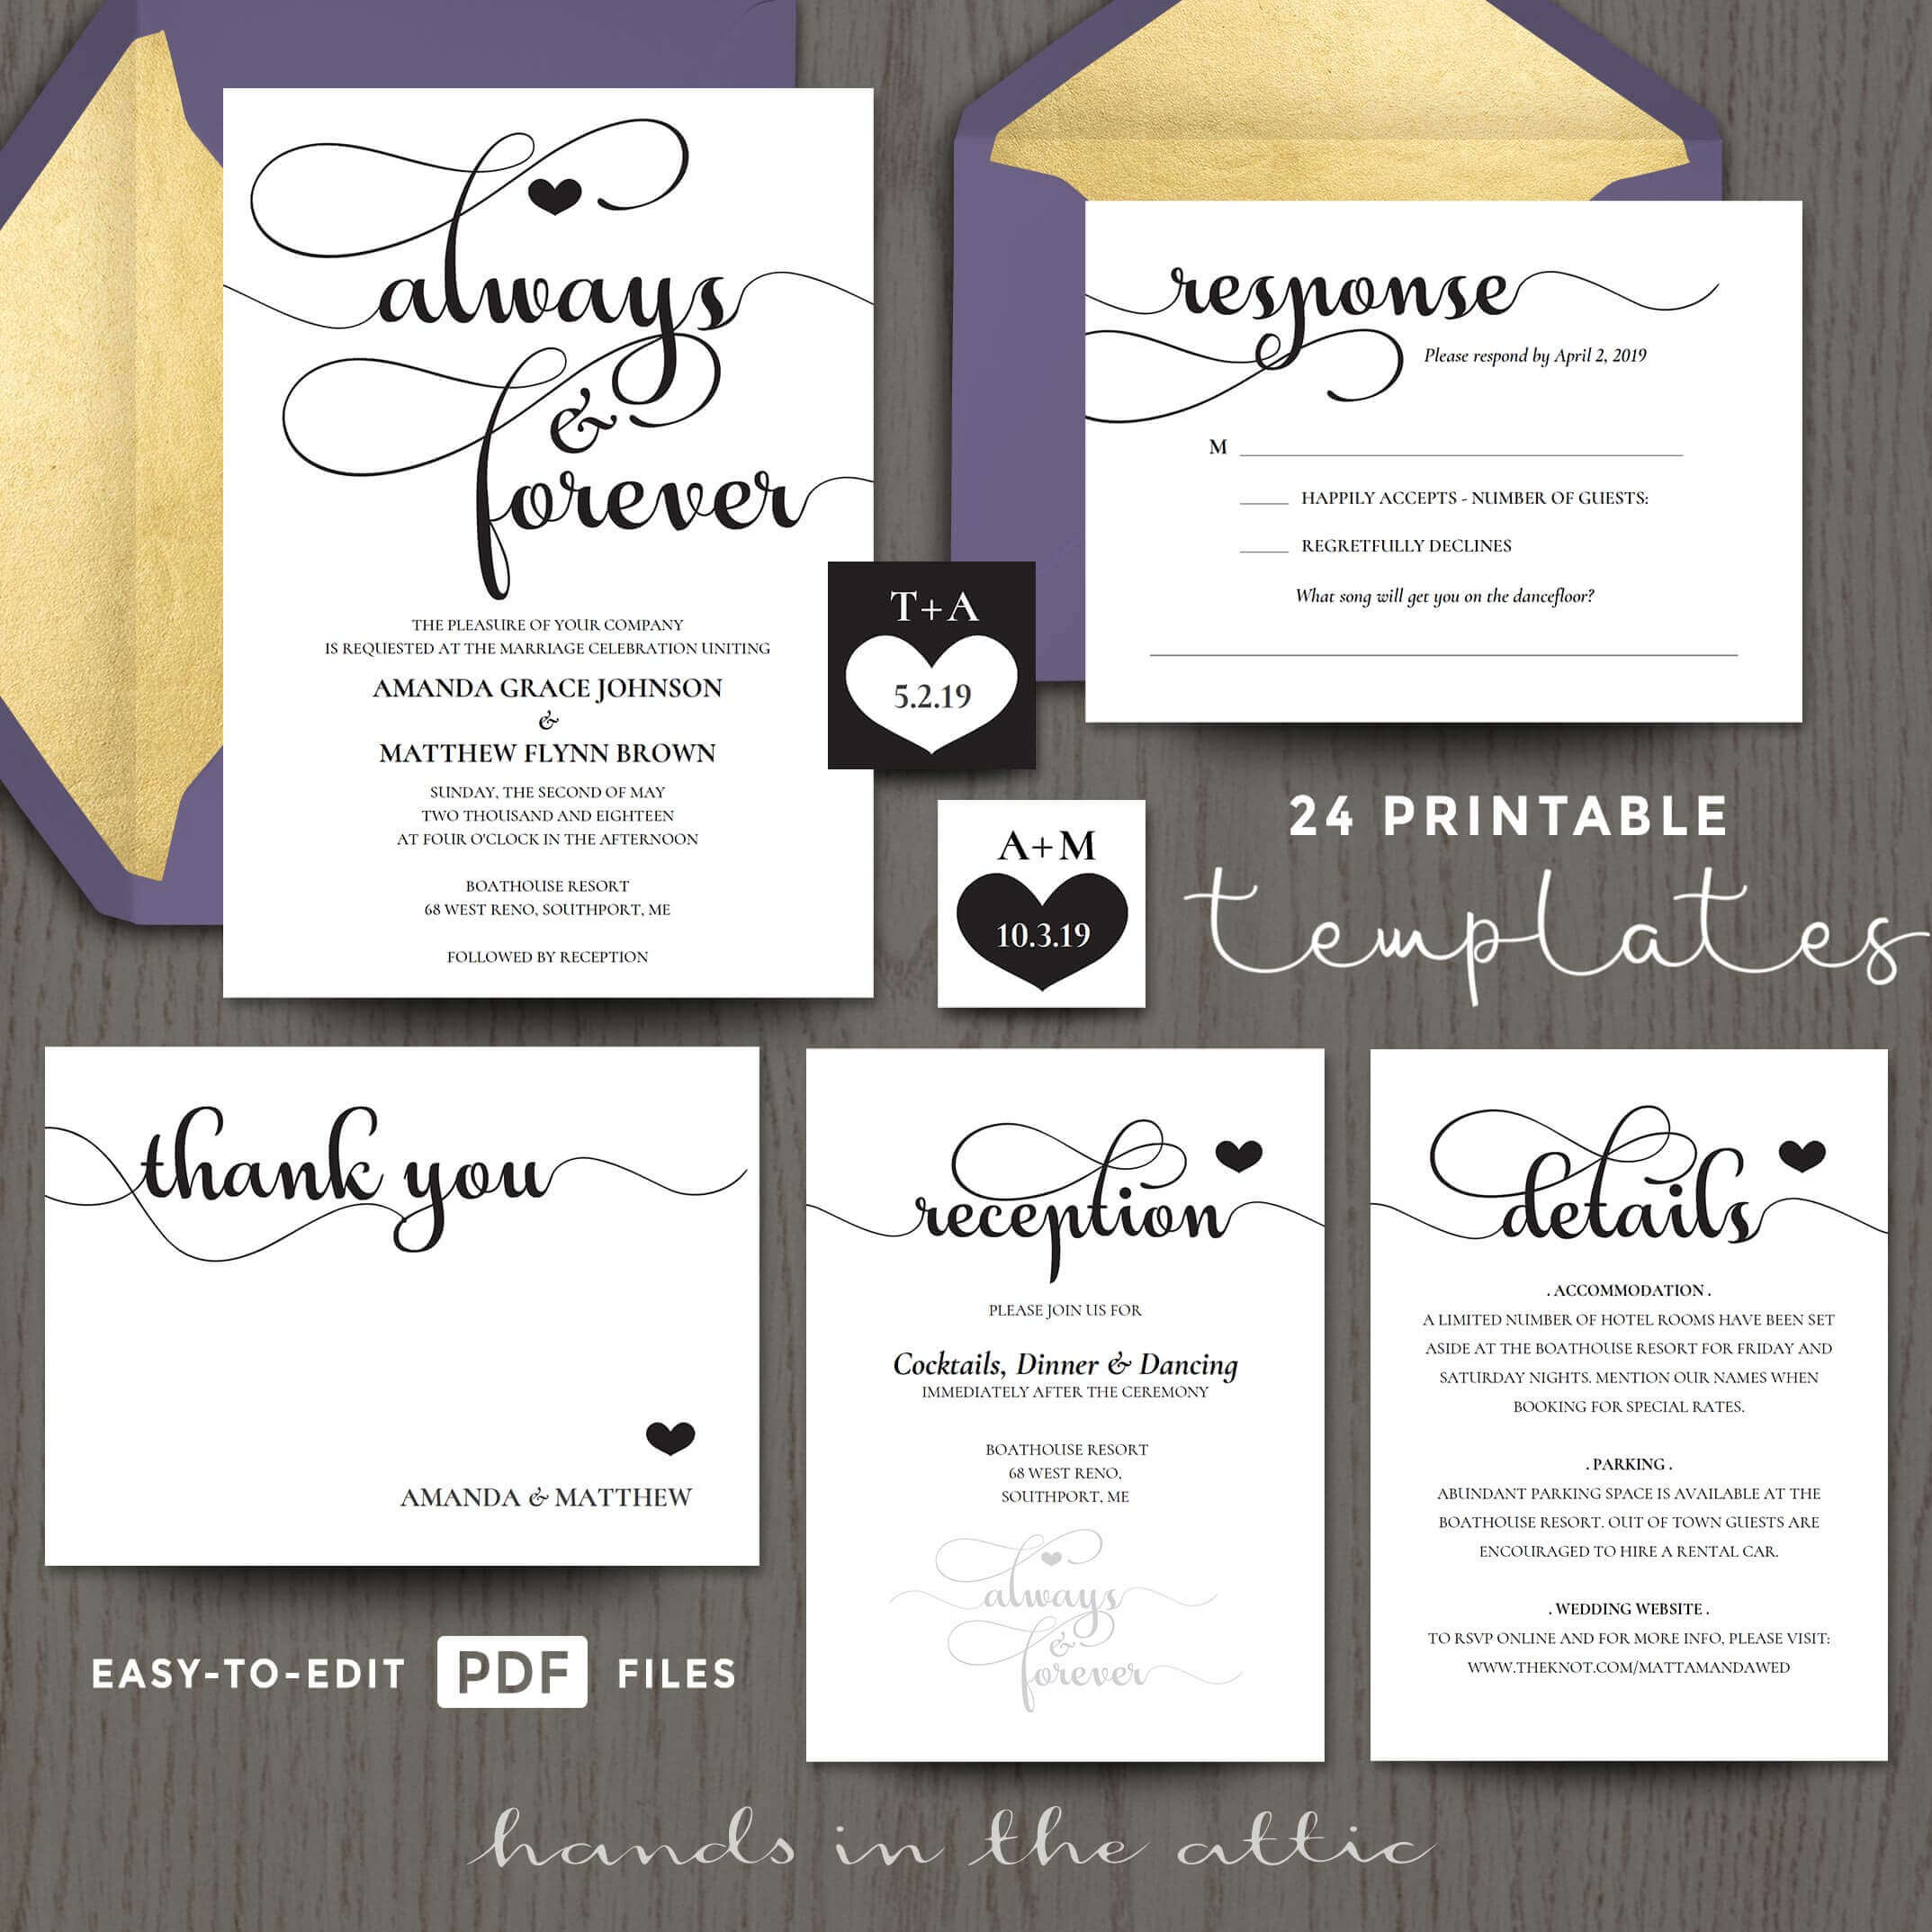 Always forever wedding invitation templates